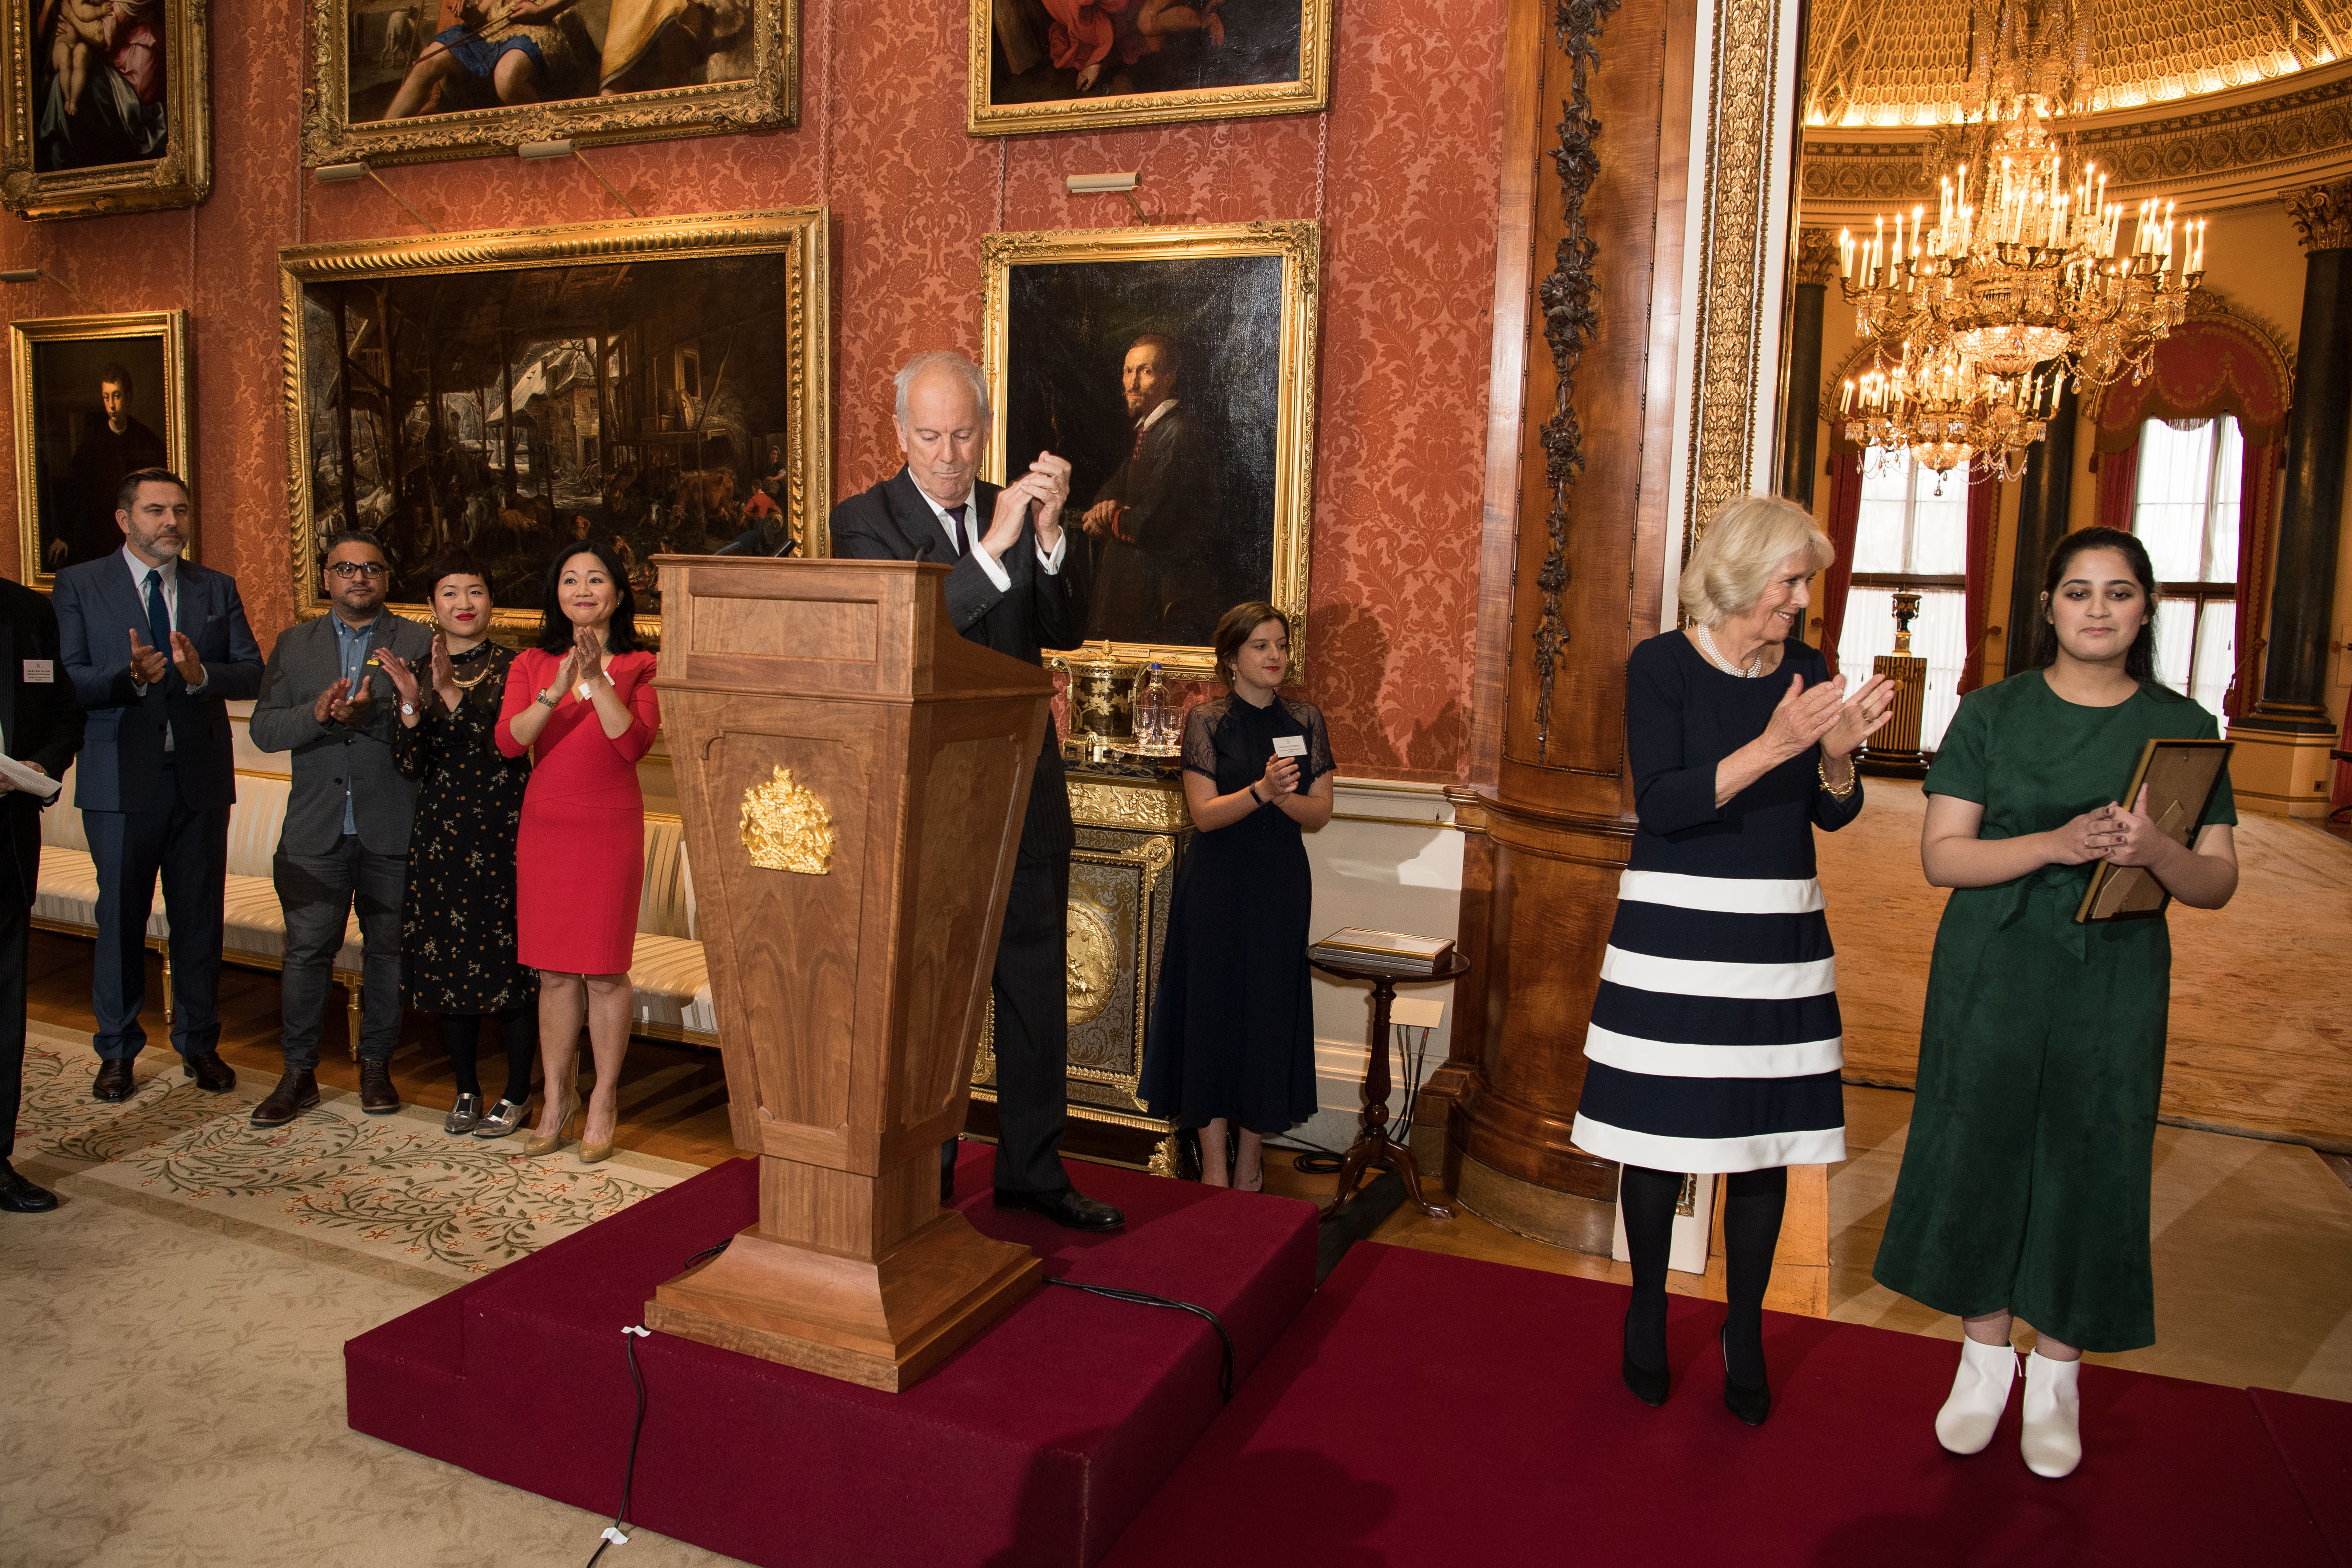 The Queen's Commonwealth Essay Competition reception 2018